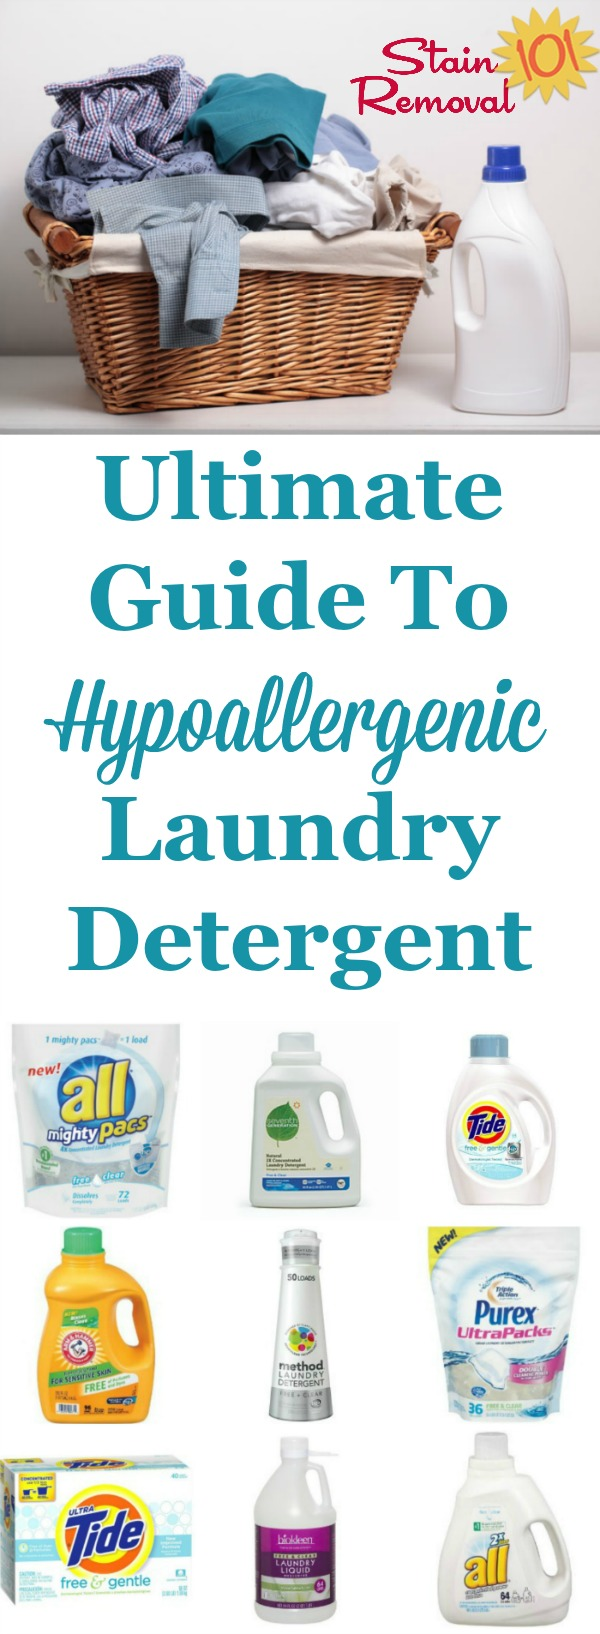 The ultimate guide to hypoallergenic laundry detergent, with a list of scent and dye free laundry soaps available, plus reviews related to both allergic reactions plus how well they clean clothes {on Stain Removal 101} #HypoallergenicLaundryDetergent #HypoallergenicDetergent #LaundryDetergent